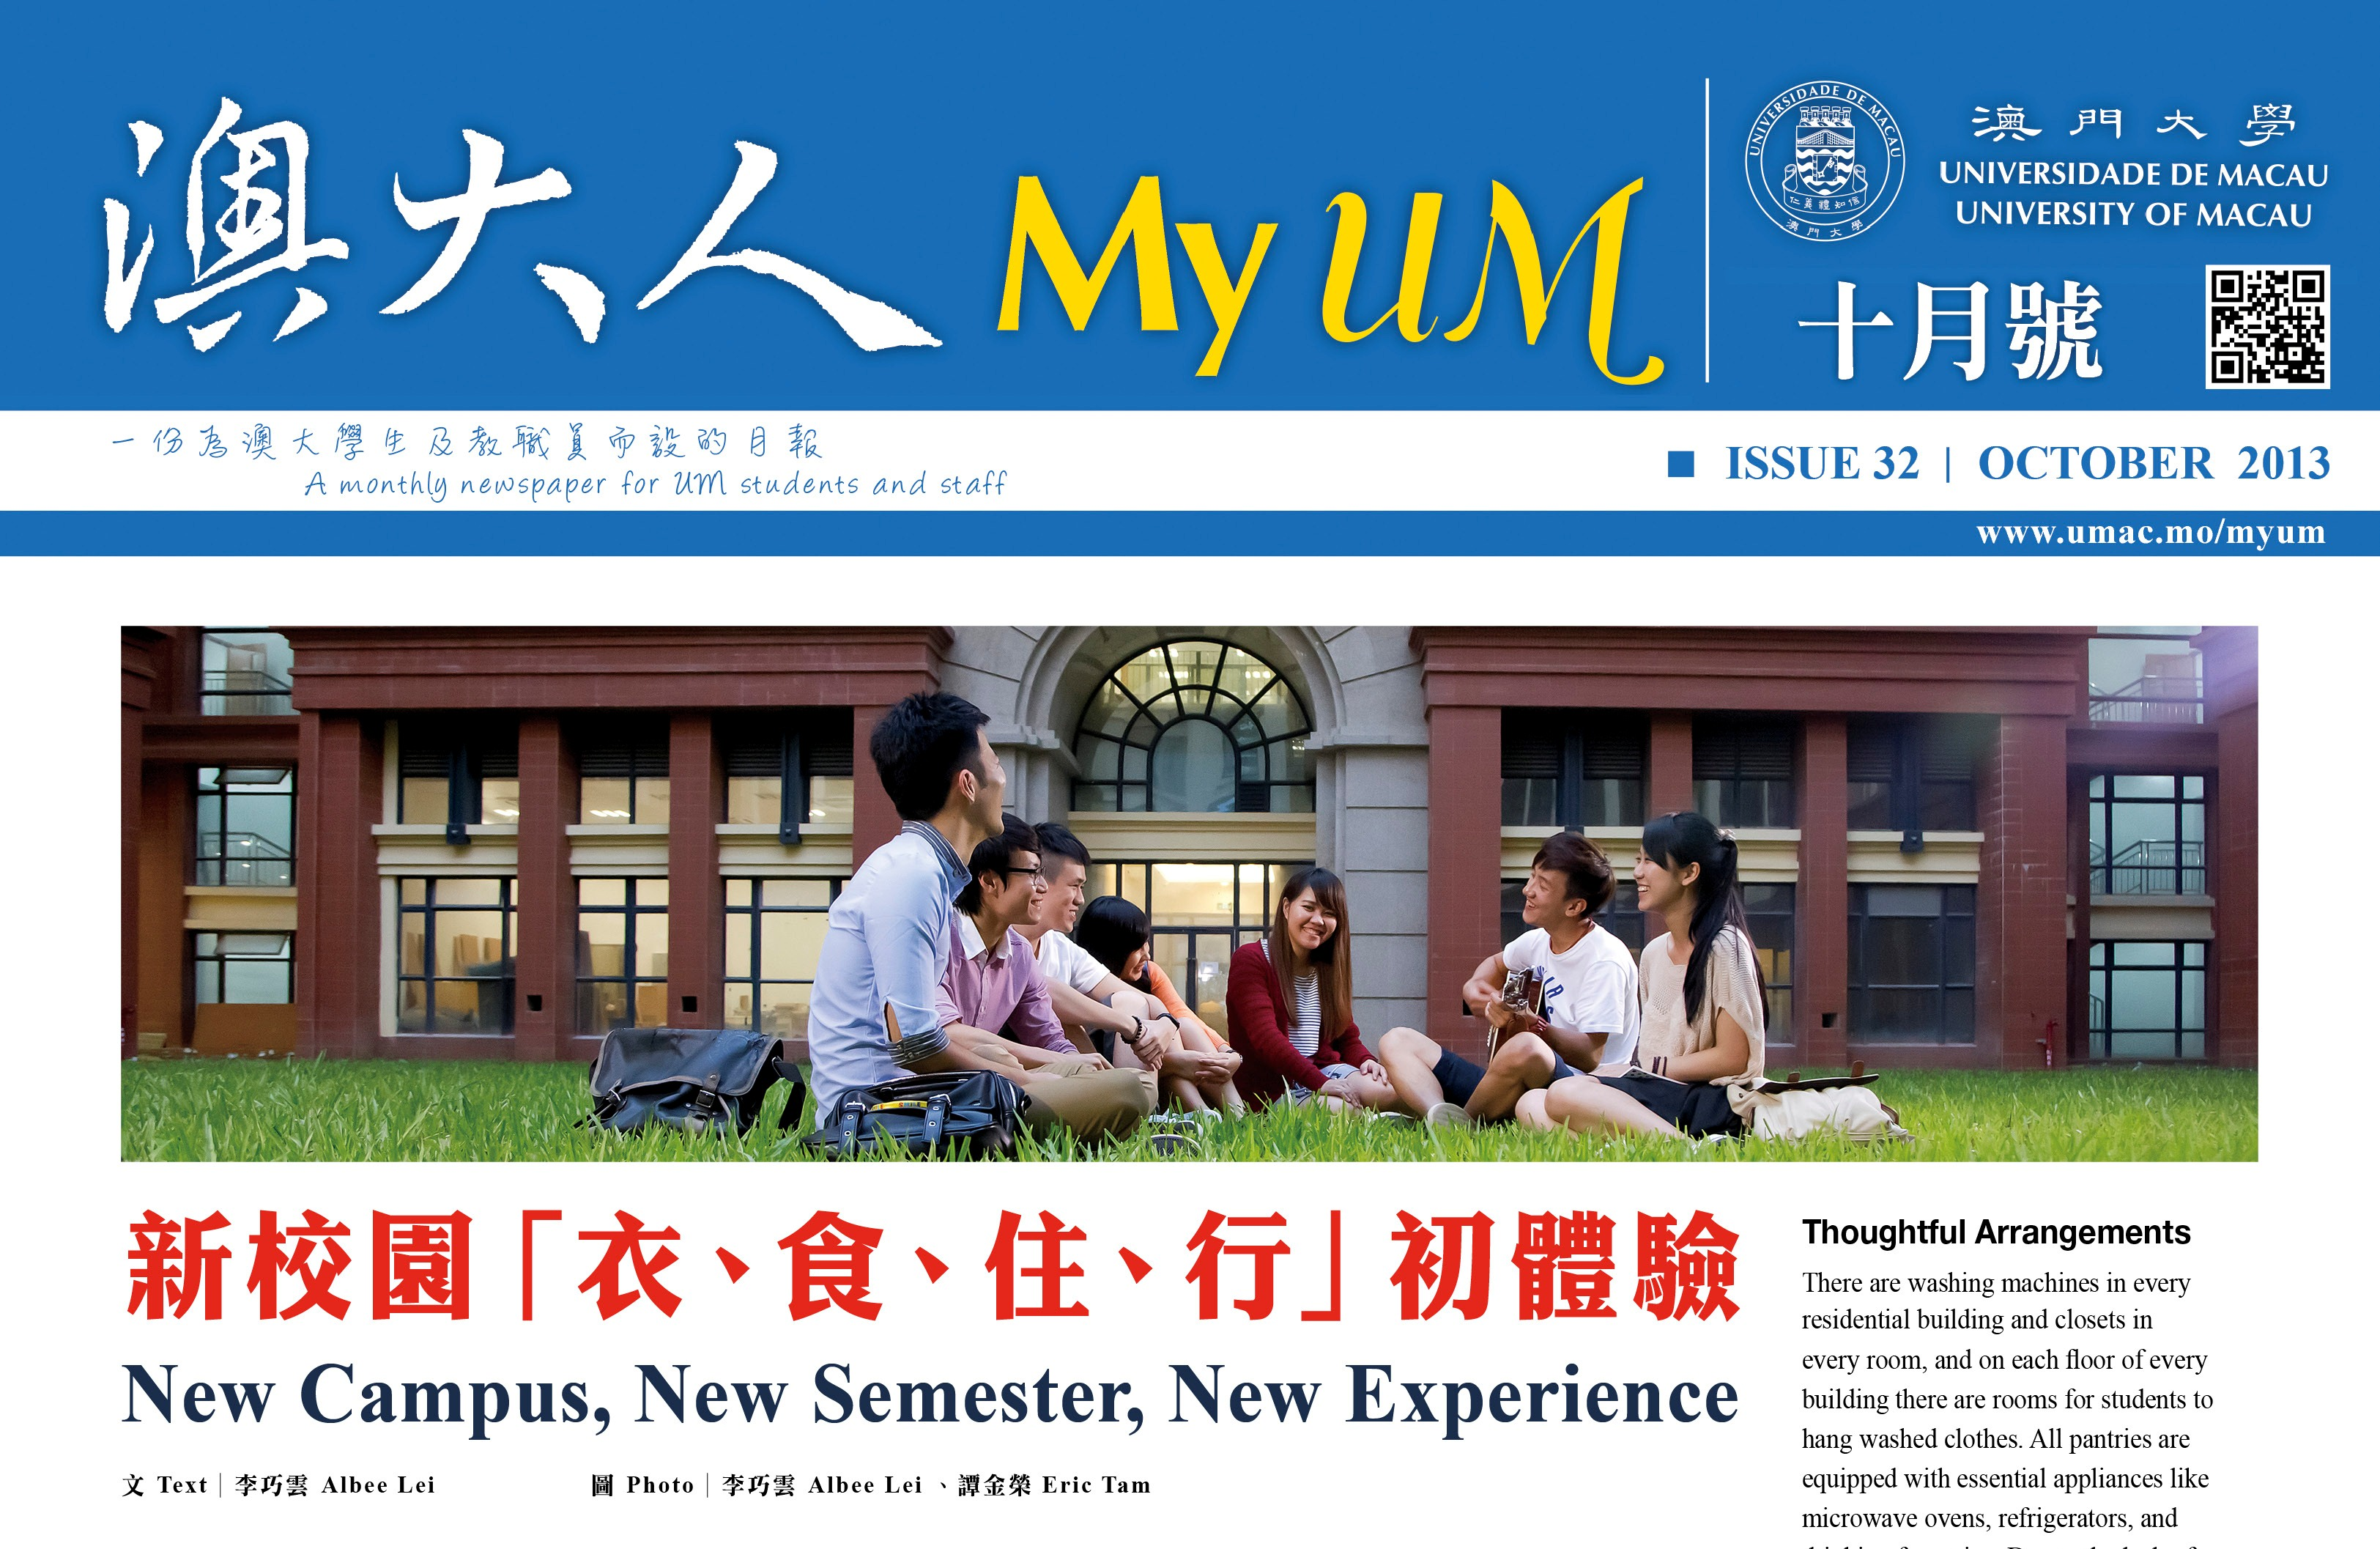 The 32nd issue of My UM